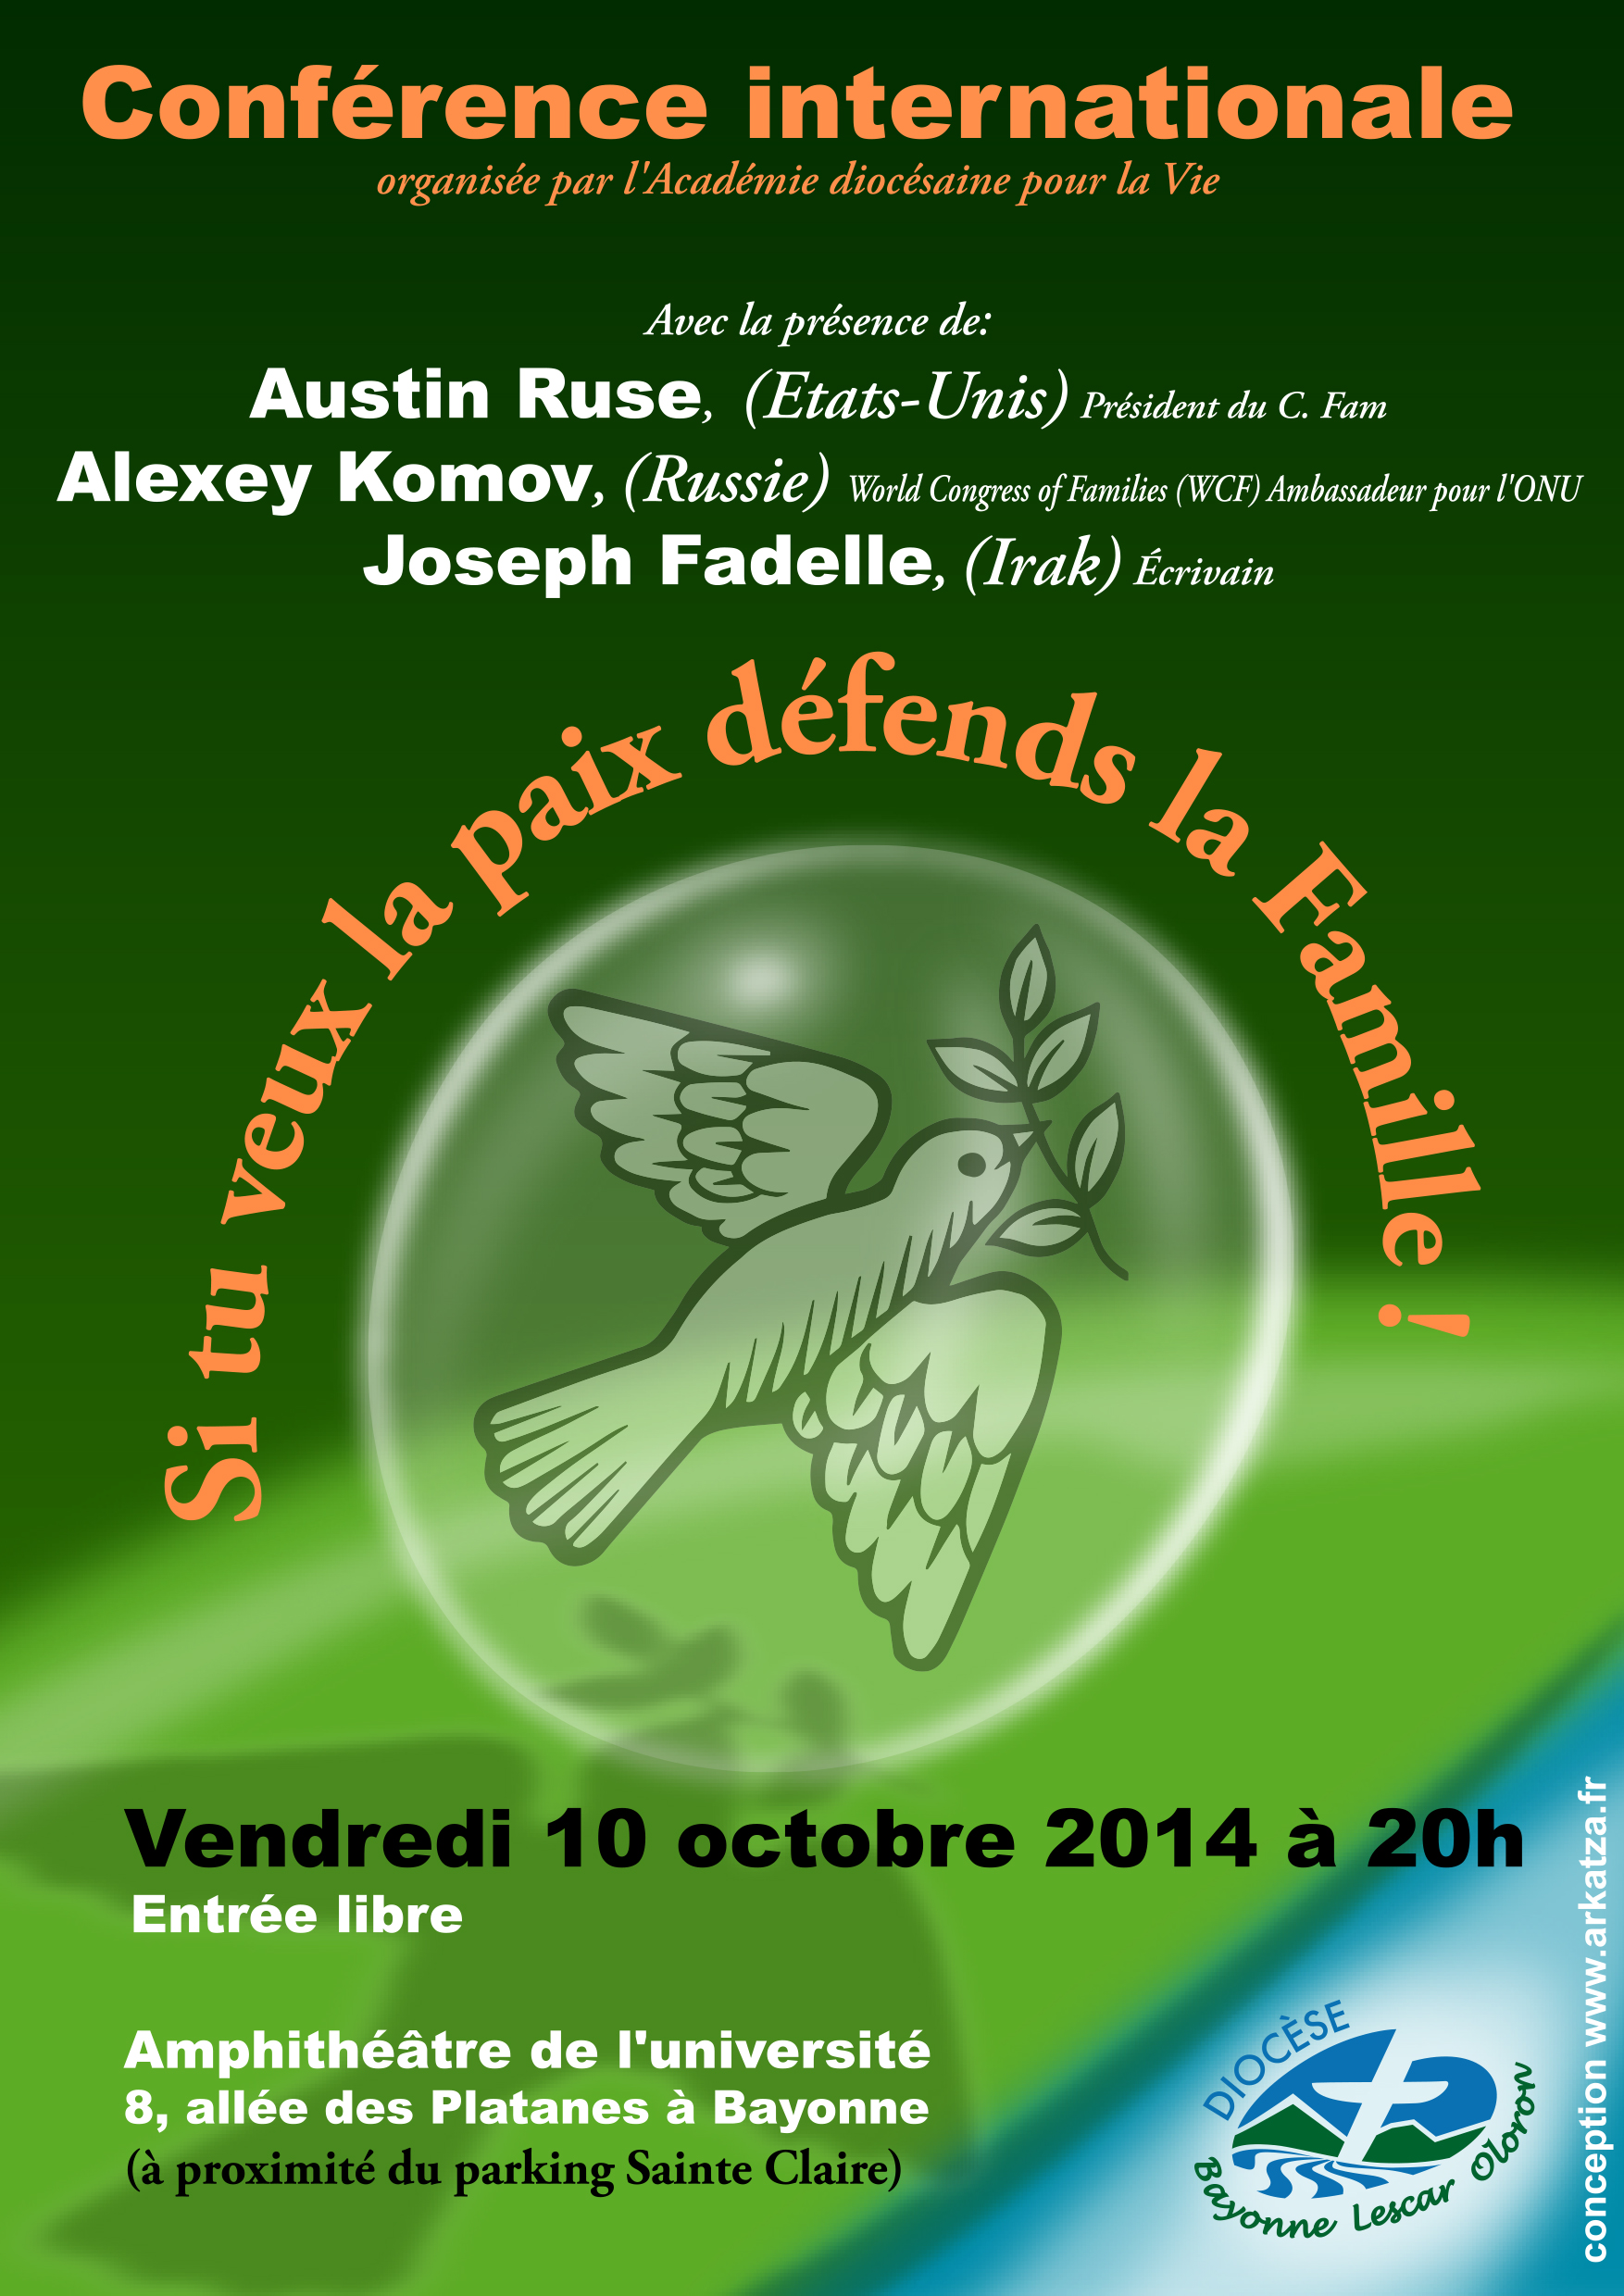 http://diocese64.org/images/conference_internationale_famille_diocese_bayonne_64_2.jpg